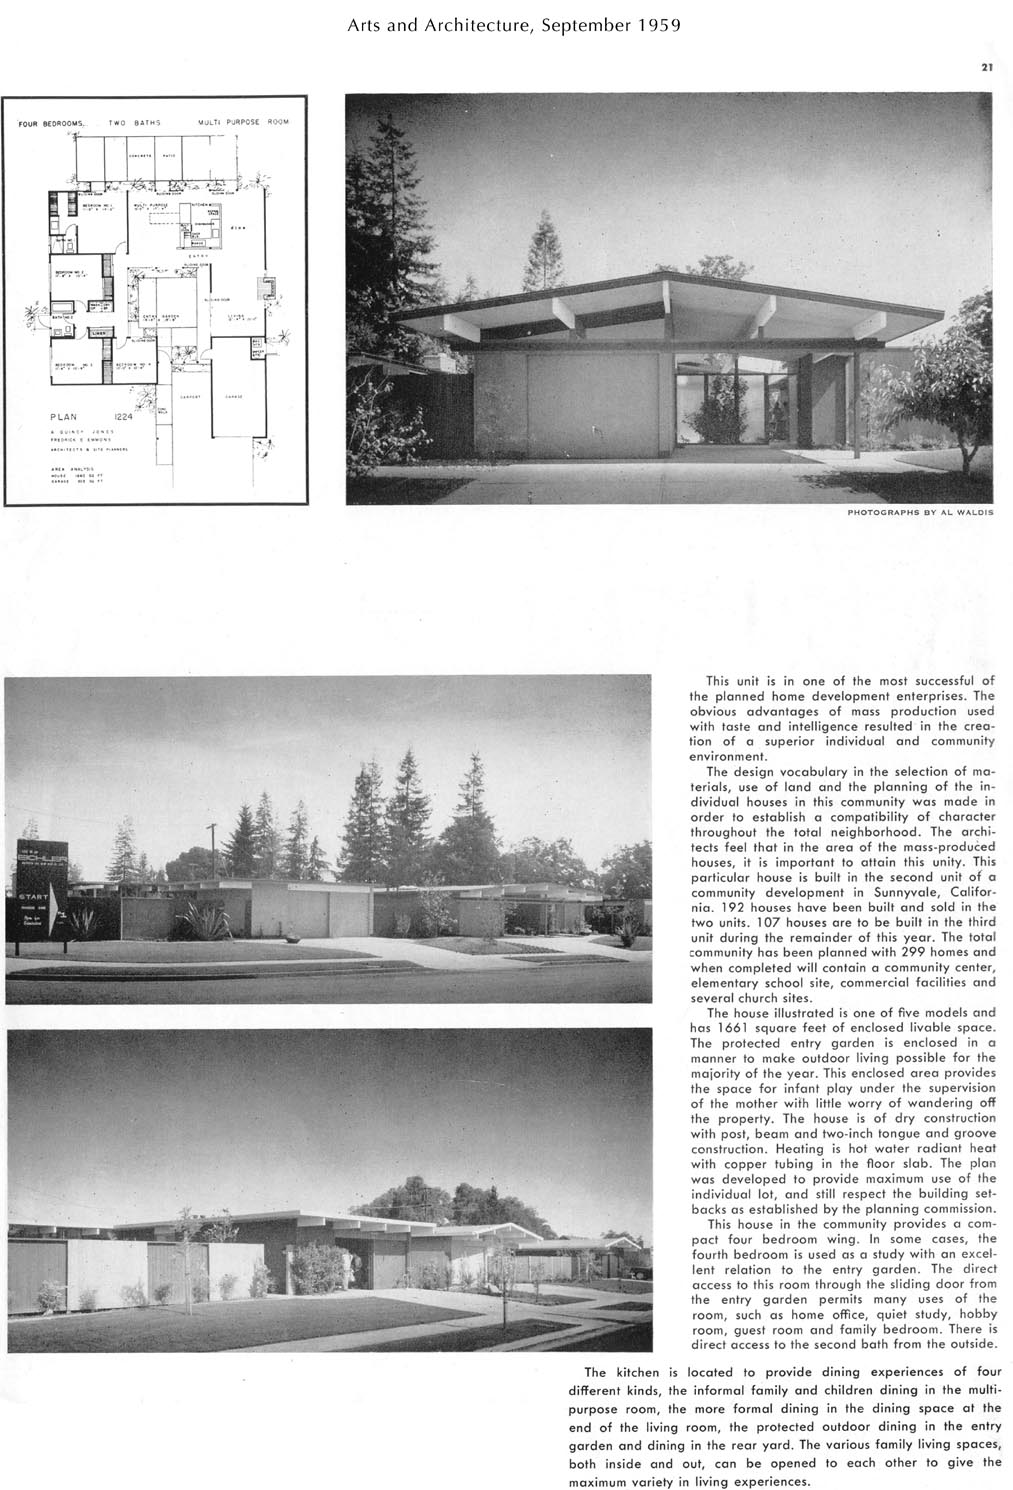 Eichler magazine article arts architecture sep 1959 for Home design articles